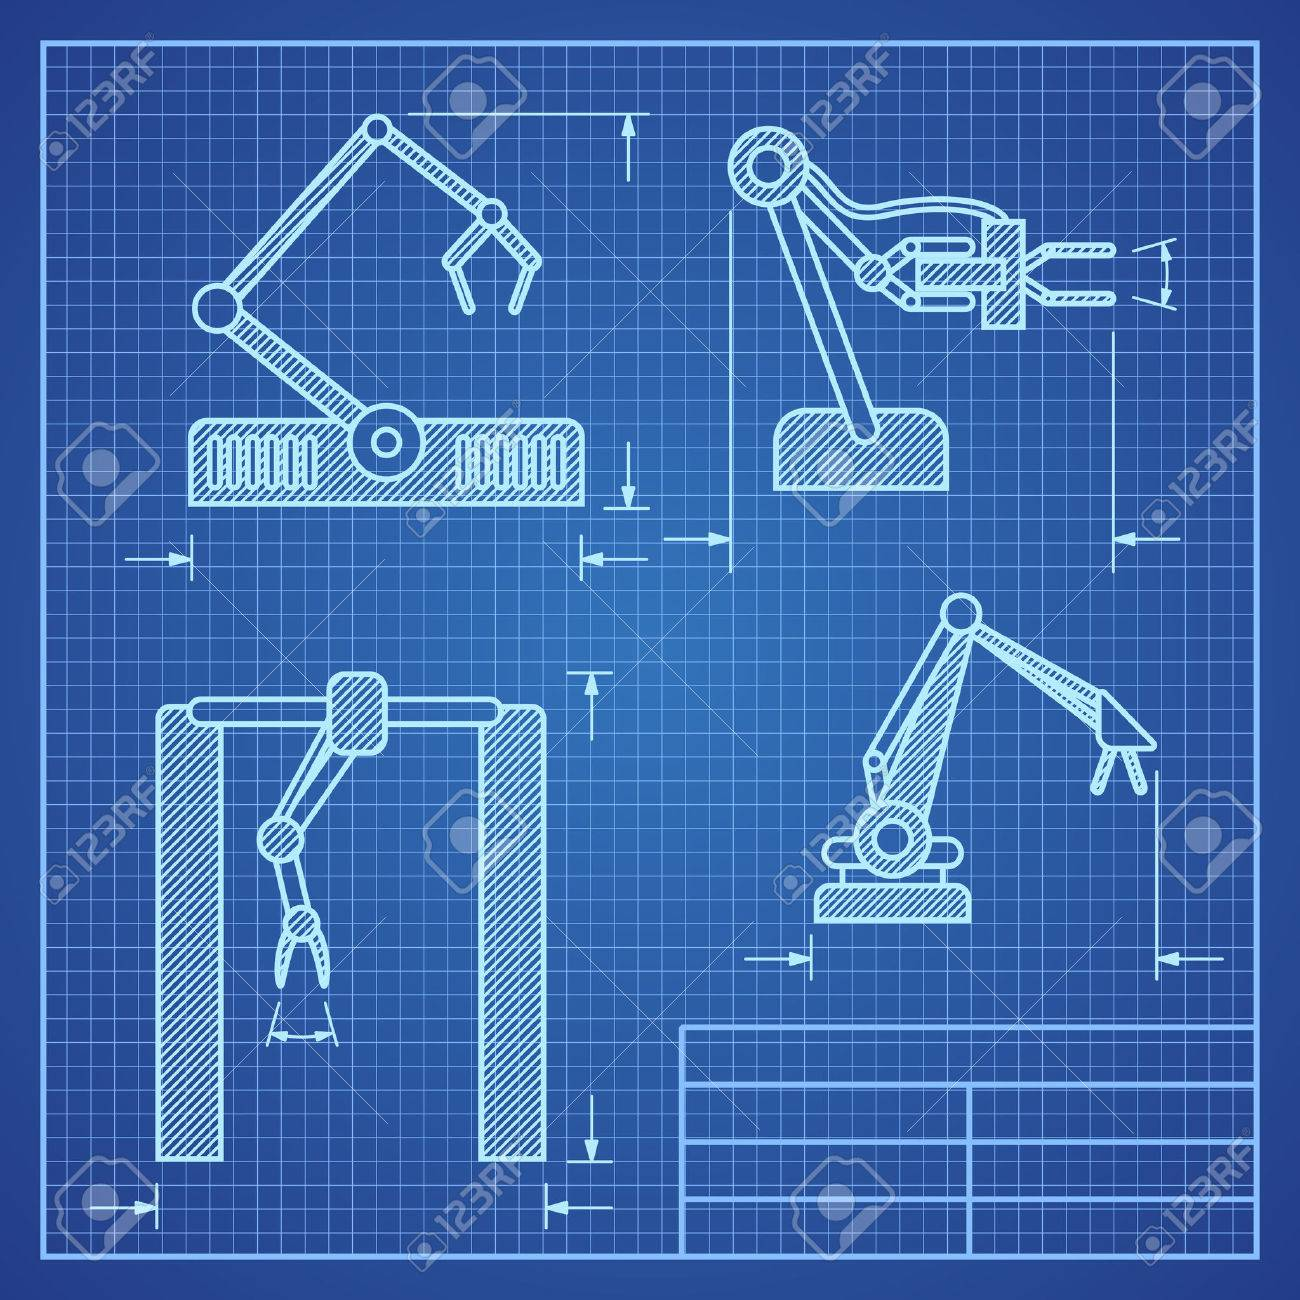 Robot arms blueprint machine industrial robotic vector project robot arms blueprint machine industrial robotic vector project blueprint robotic arm illustration stock vector malvernweather Gallery